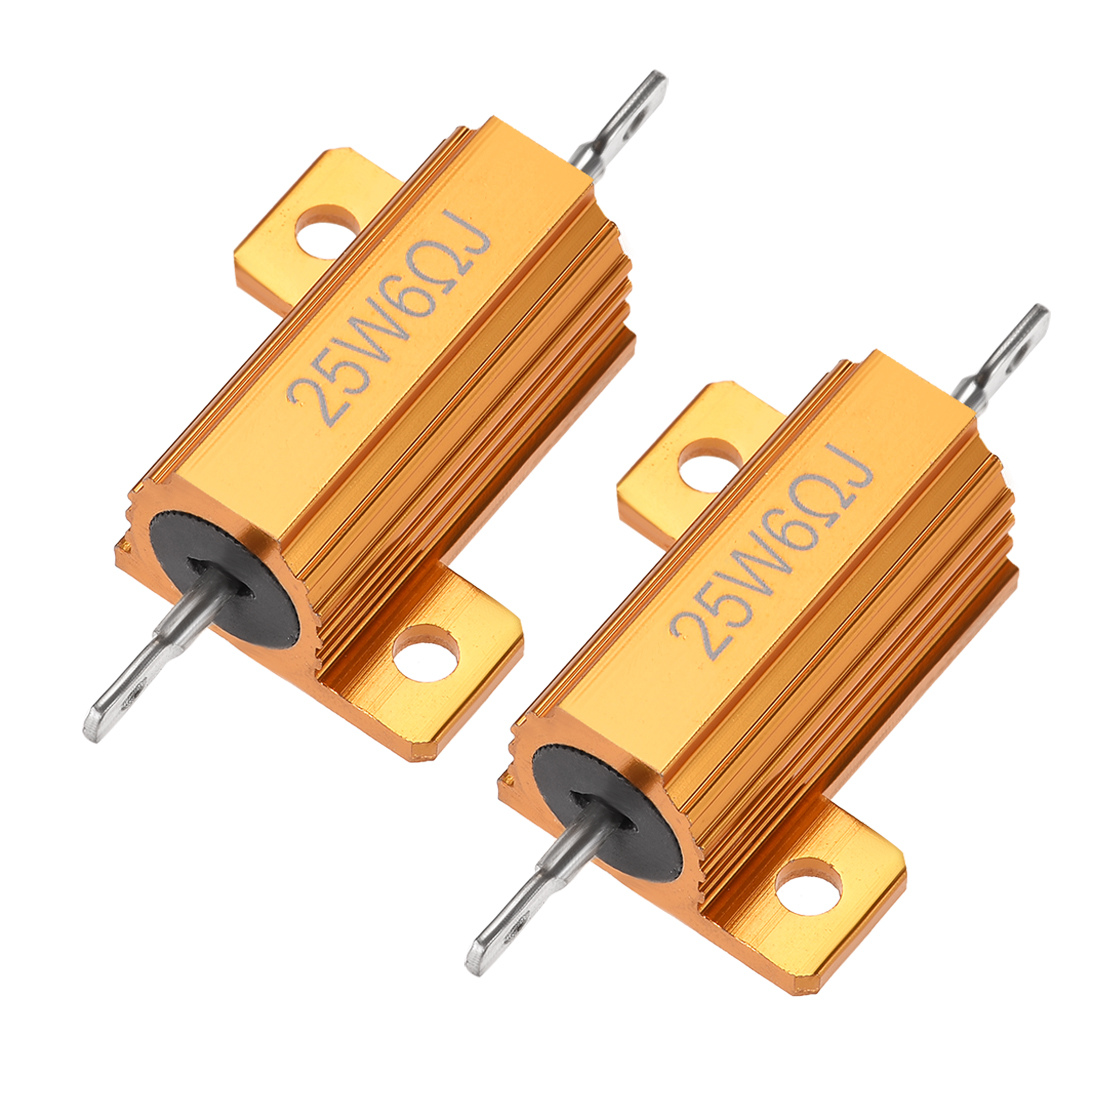 25Watt 6 Ohm 5% Aluminum Housing Resistor Wirewound Resistor Gold Tone 2 Pcs